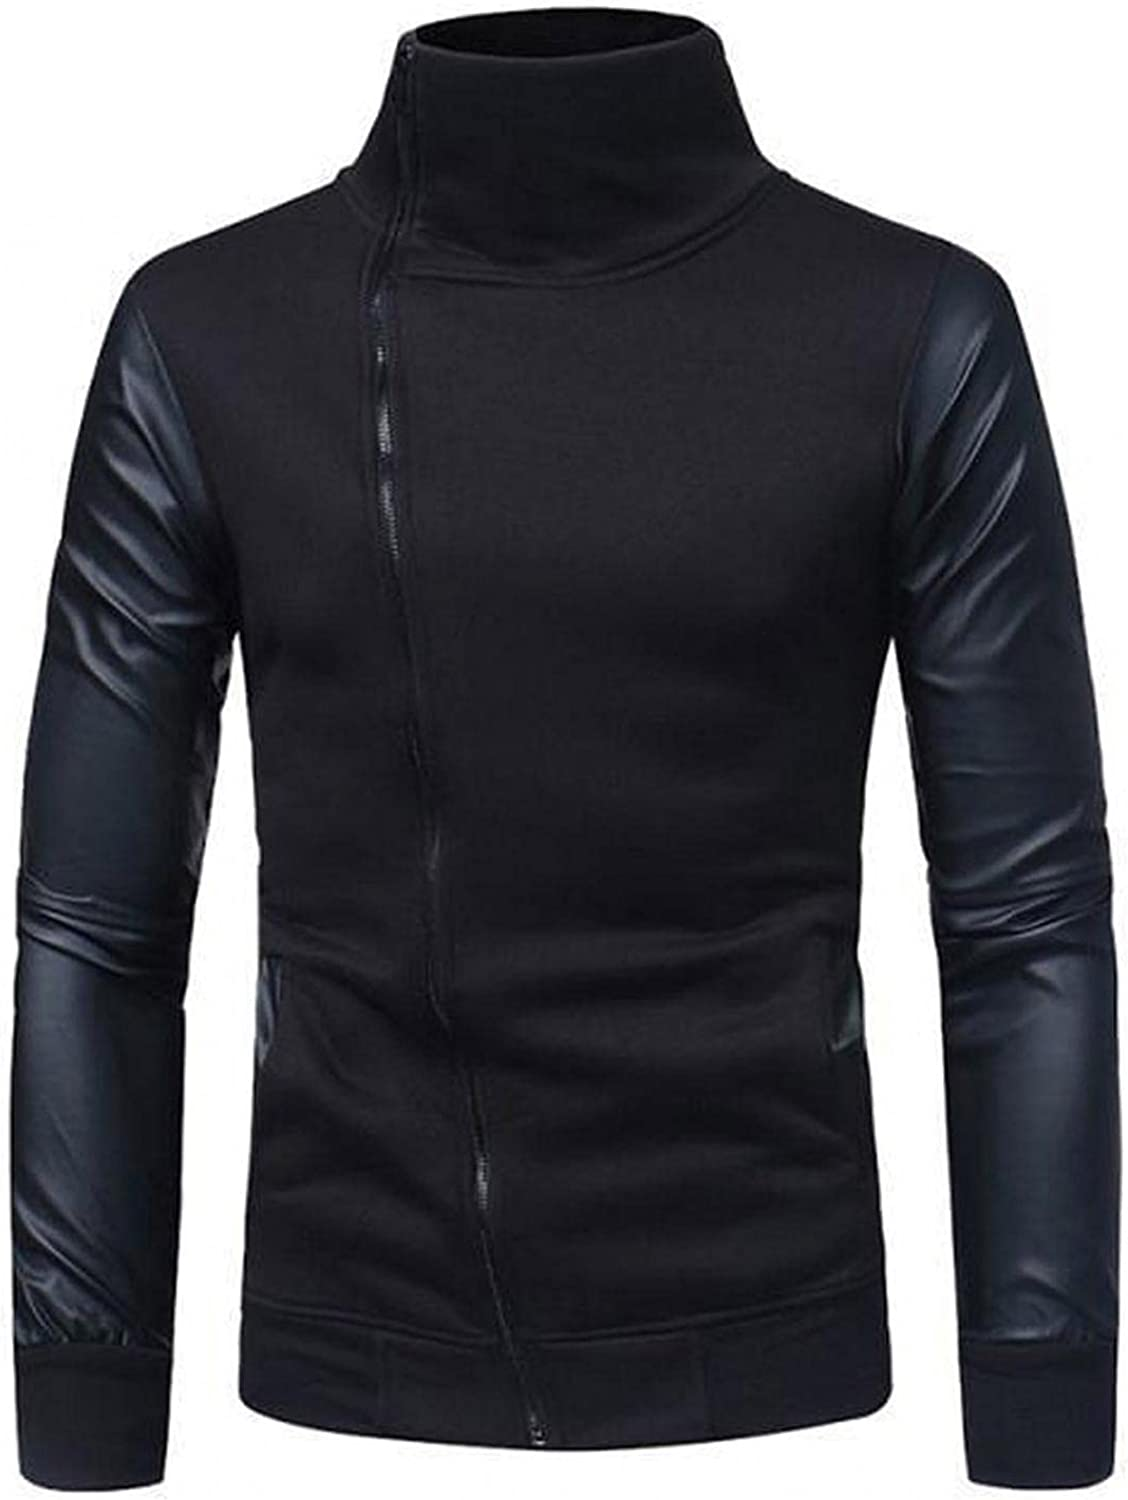 Burband Mens Vintage Turtleneck Sweaters Zip Up Faux Leather Jackets Motorcycle Racer Biker Stand Collar Bomber Jackets